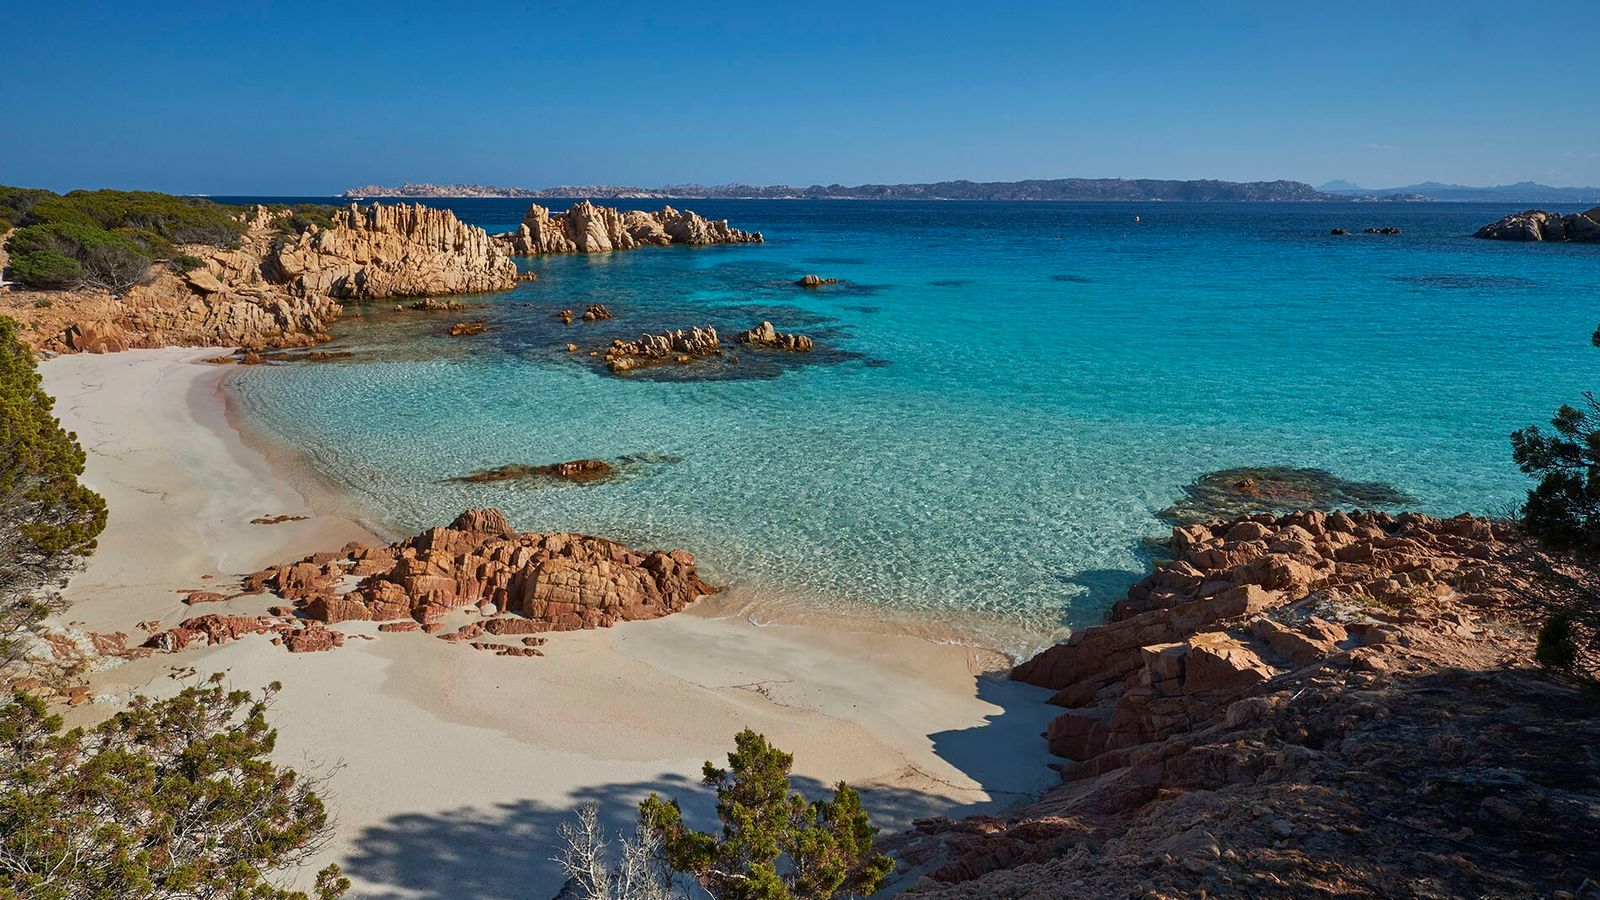 The tiny isle of Budelli makes up part of La Maddalena archipelago, much admired for its ...